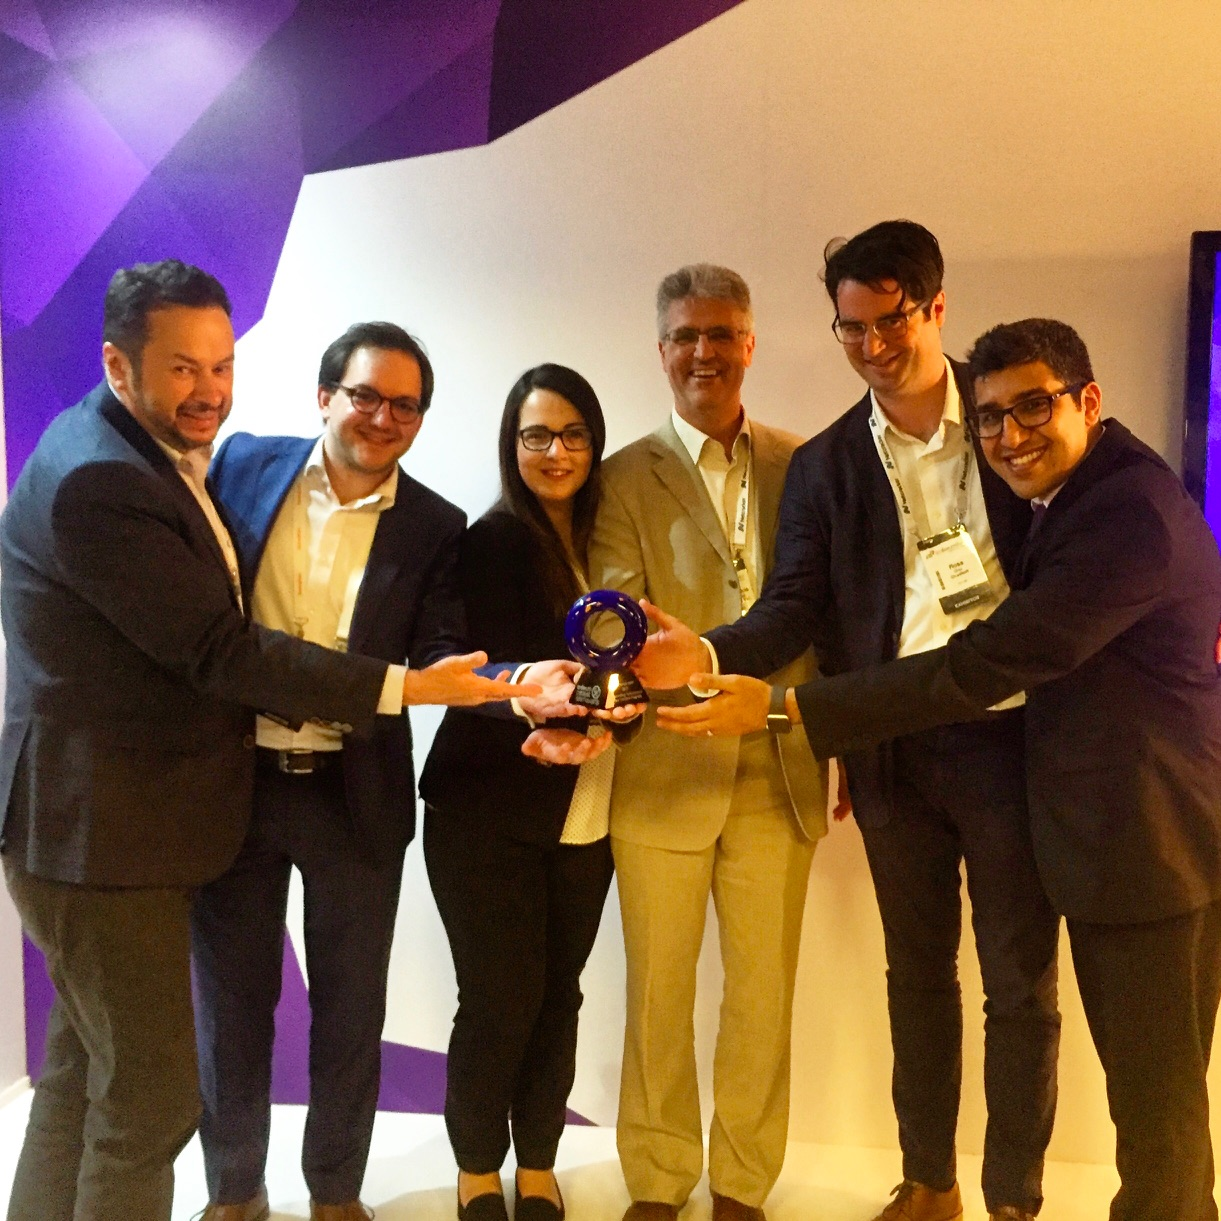 Some of the winning team (pictured from left to right): Simon Beddus (BT), Nico Müller (Bearing Point), Claudia Cristina (BT), Ross Gray (Cloudsoft) and Mohammad Zoualfaghari (BT).